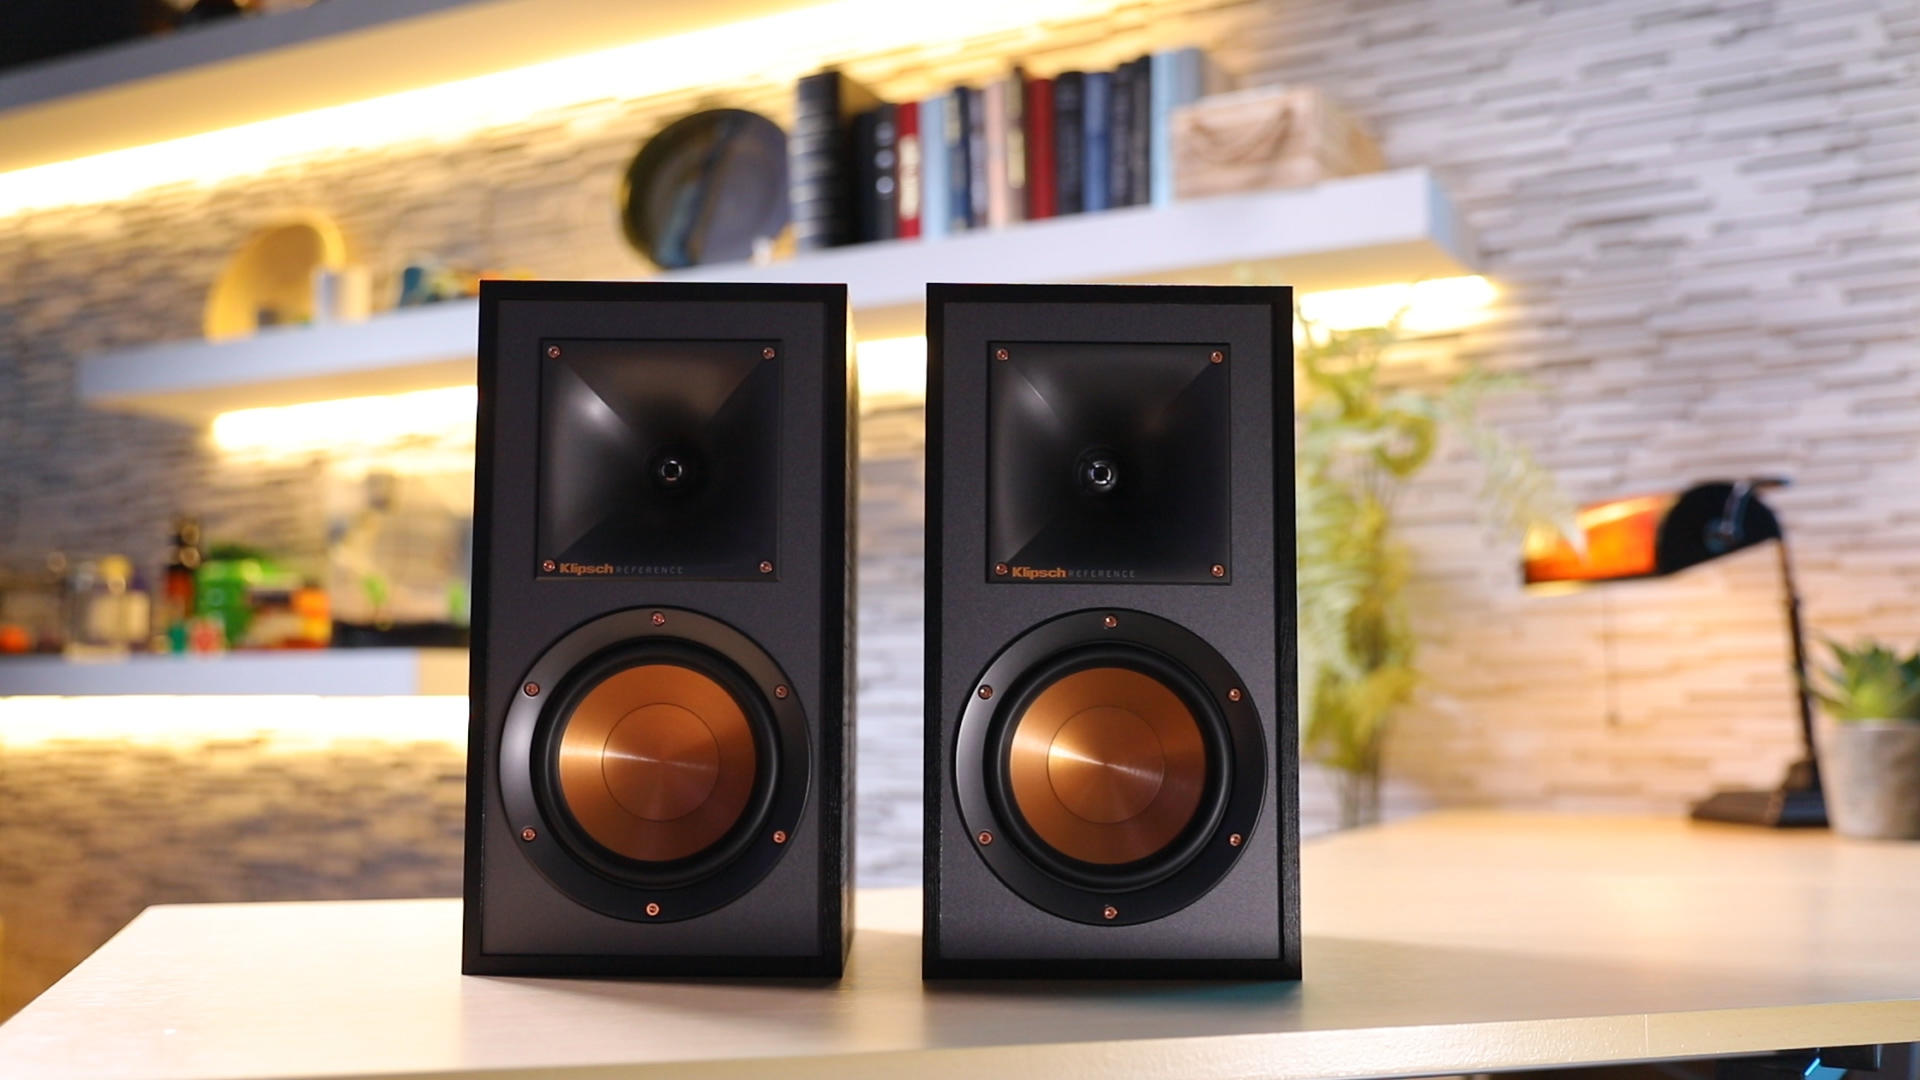 Video: Klipsch's striking R-51M monitors sound great on a budget